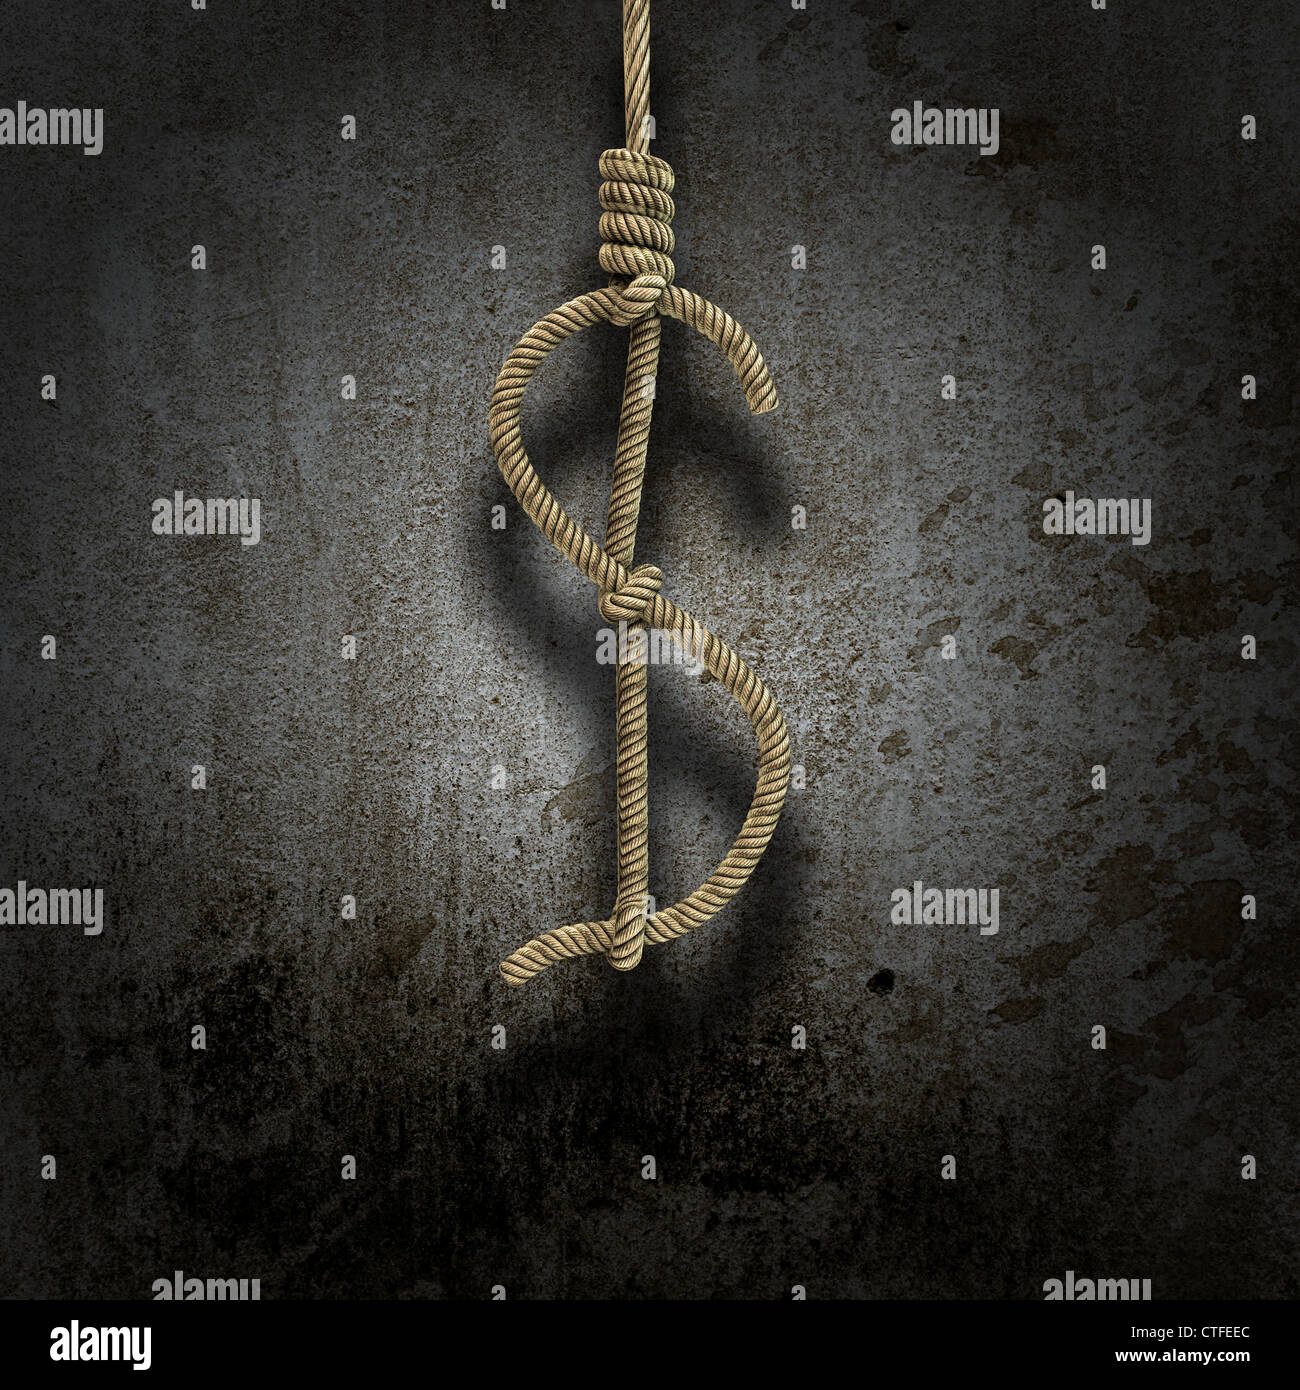 Hangman's knot shaped like a dollar sign - financial depression concept - Stock Image